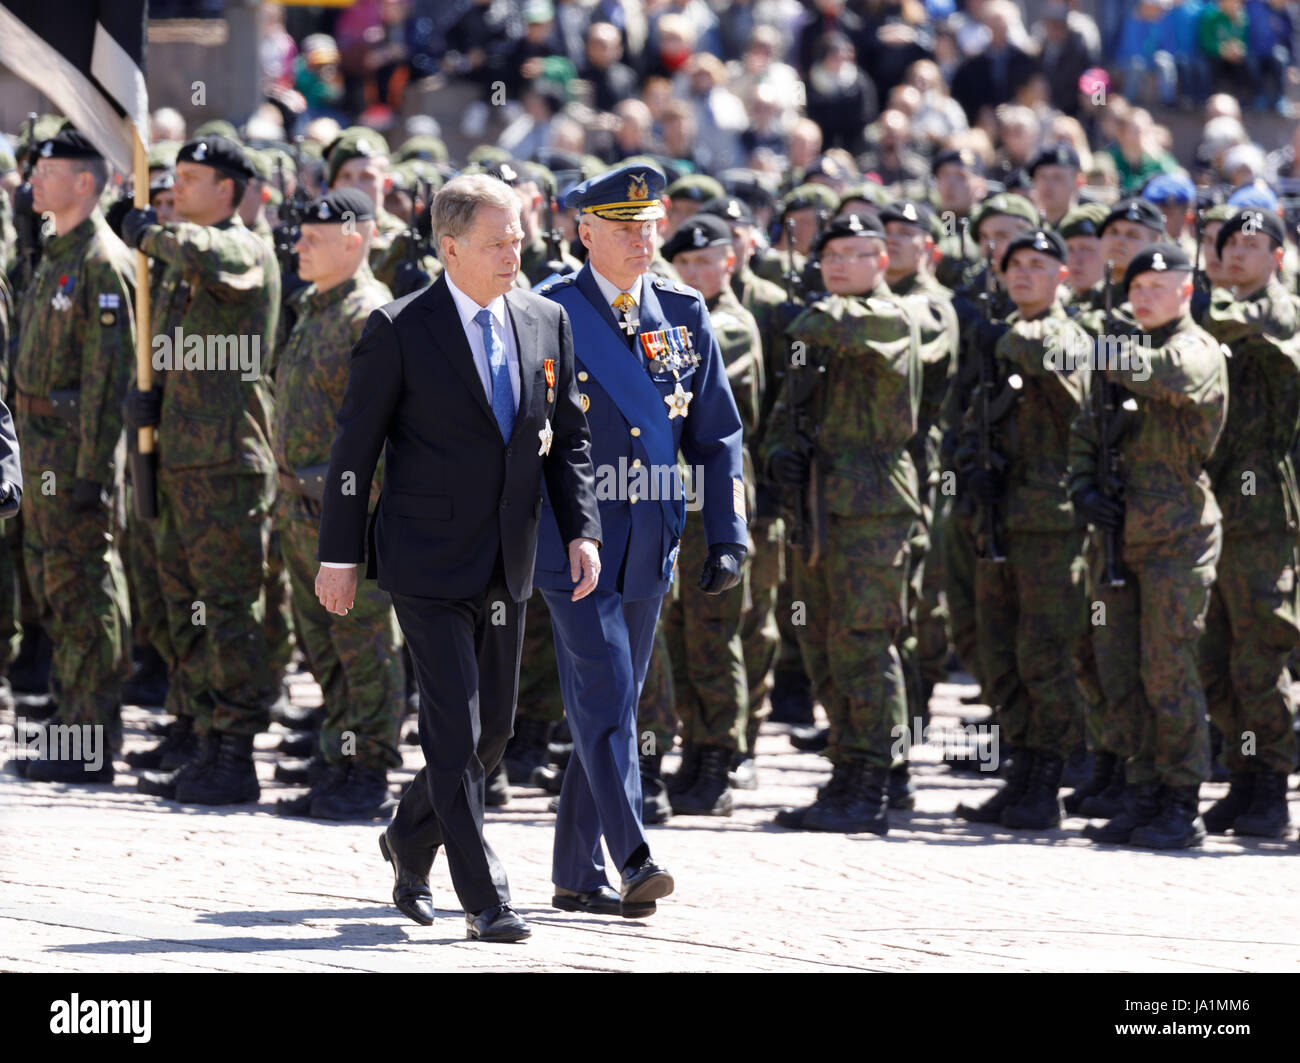 Helsinki, Finland. 4th June, 2017. President Sauli Niinistö and Chief of Defence, General Jarmo Lindberg, inspecting - Stock Image